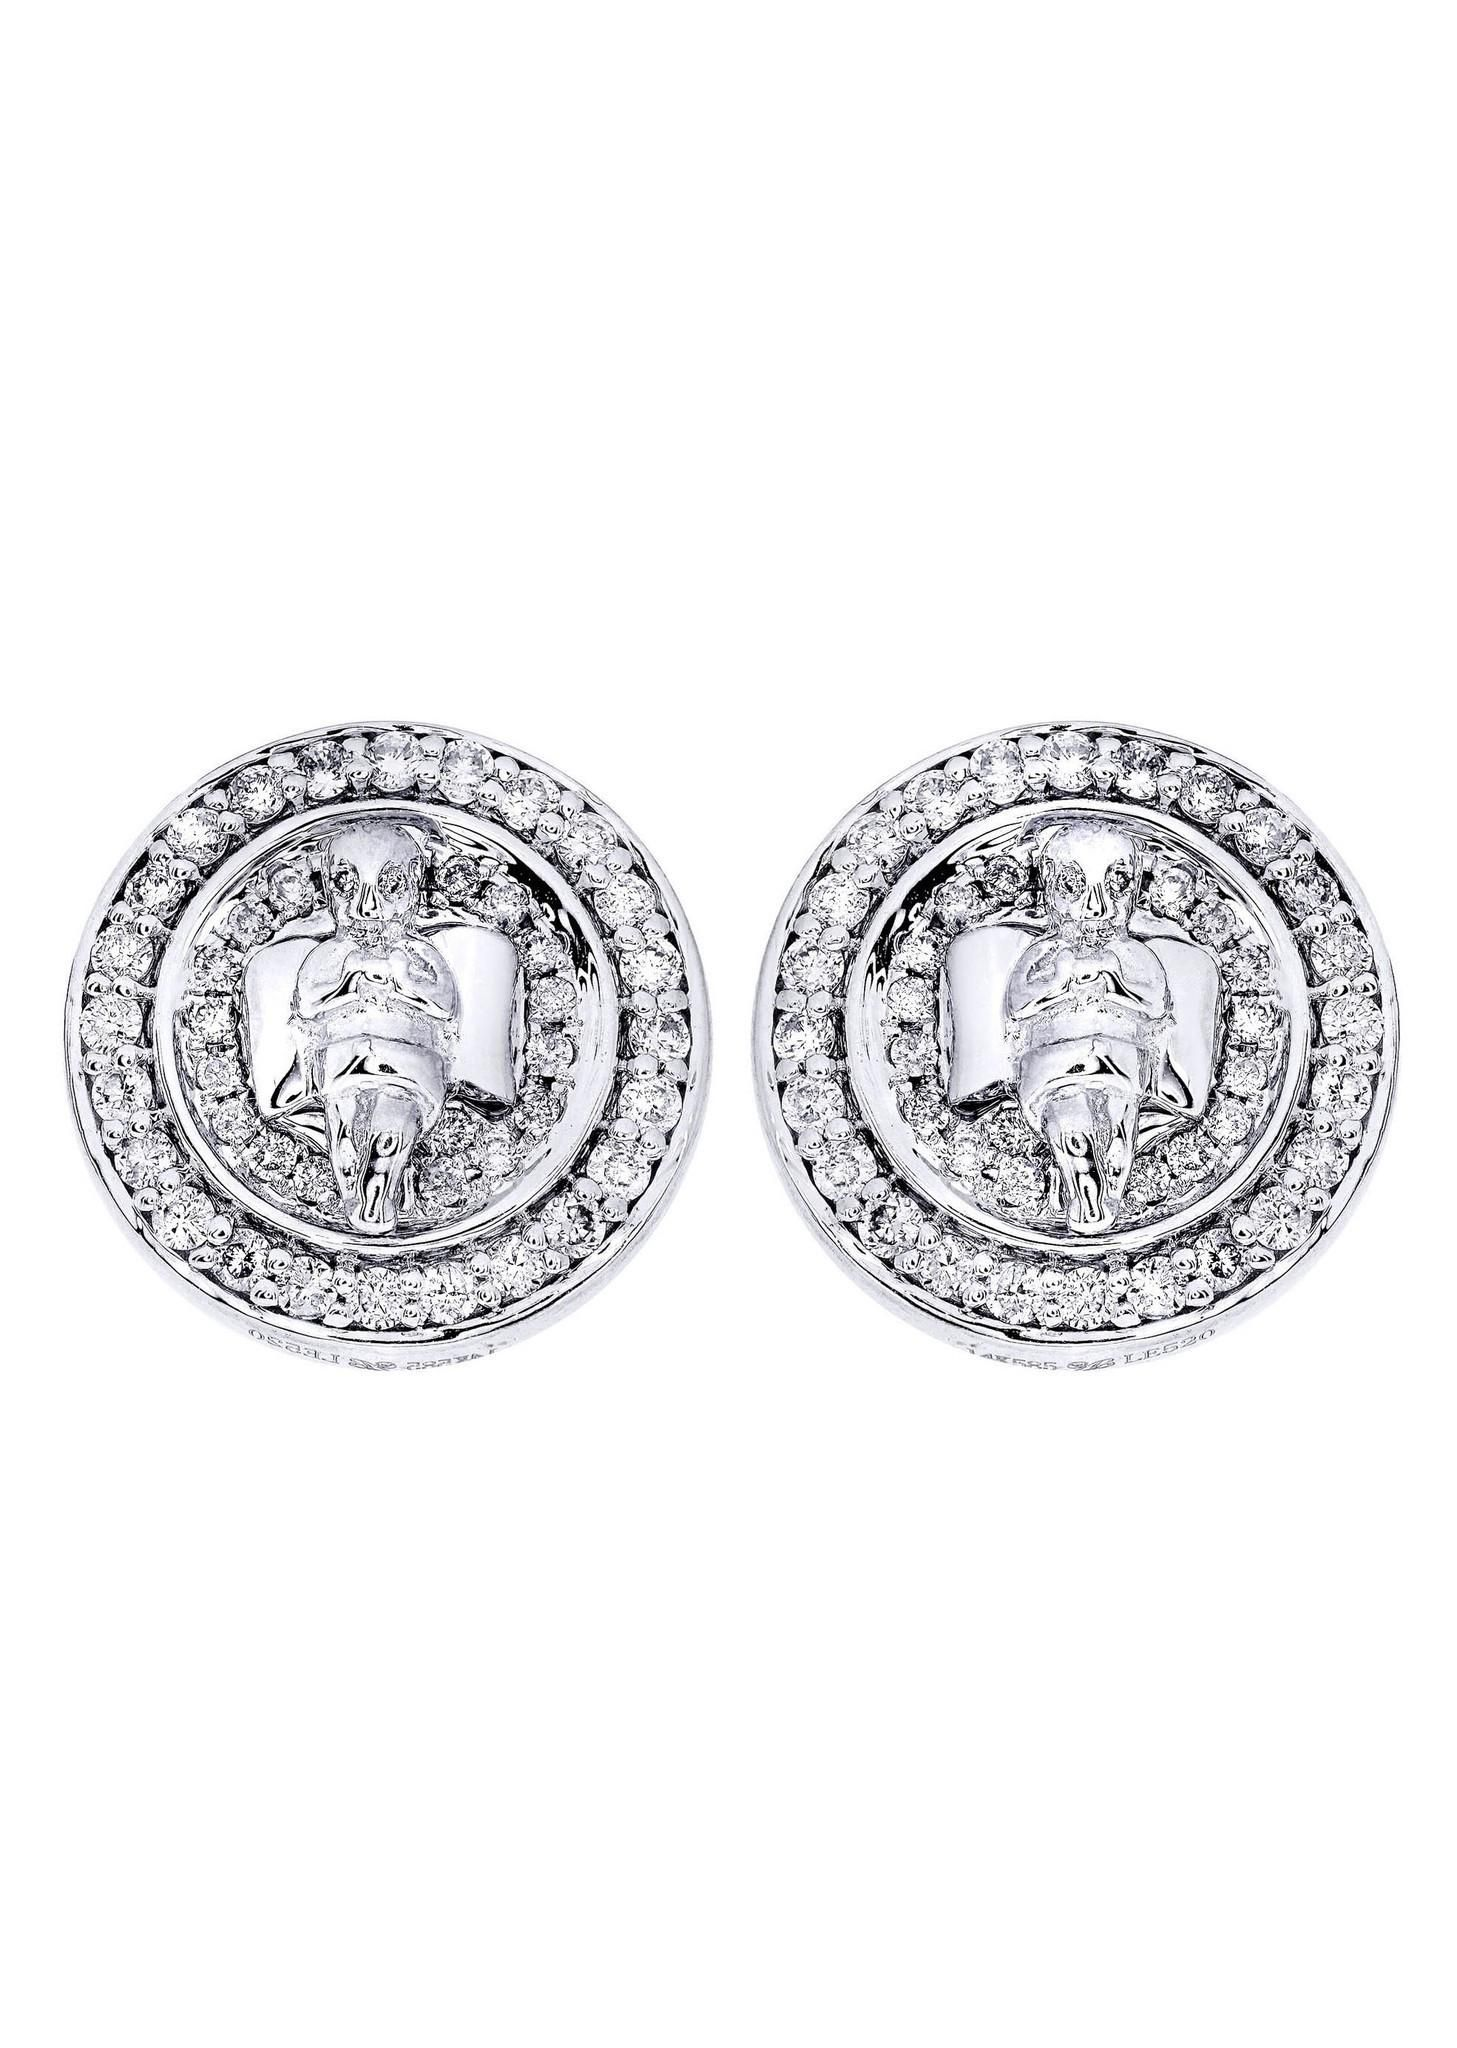 AdoreWe FROST NYC Diamond Earrings For Men 14K White Gold 0 82